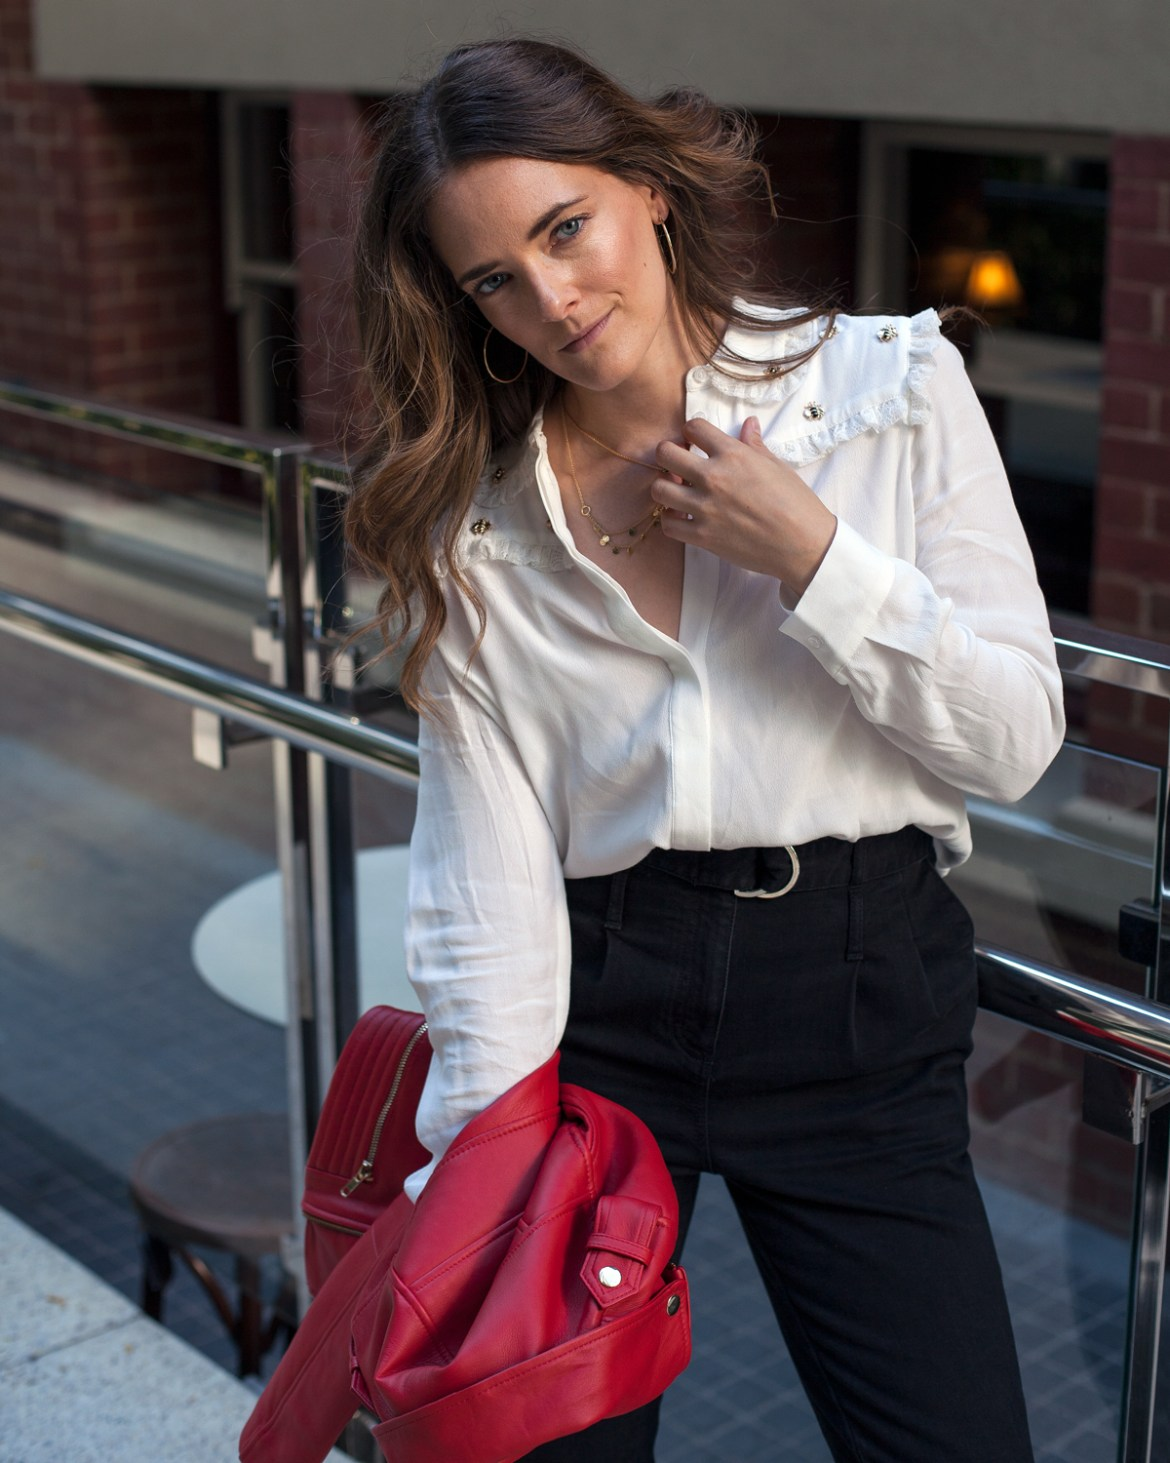 Maje Paris bee blouse, red leather jacket, stud boots worn by Jenelle from Inspiring Wit